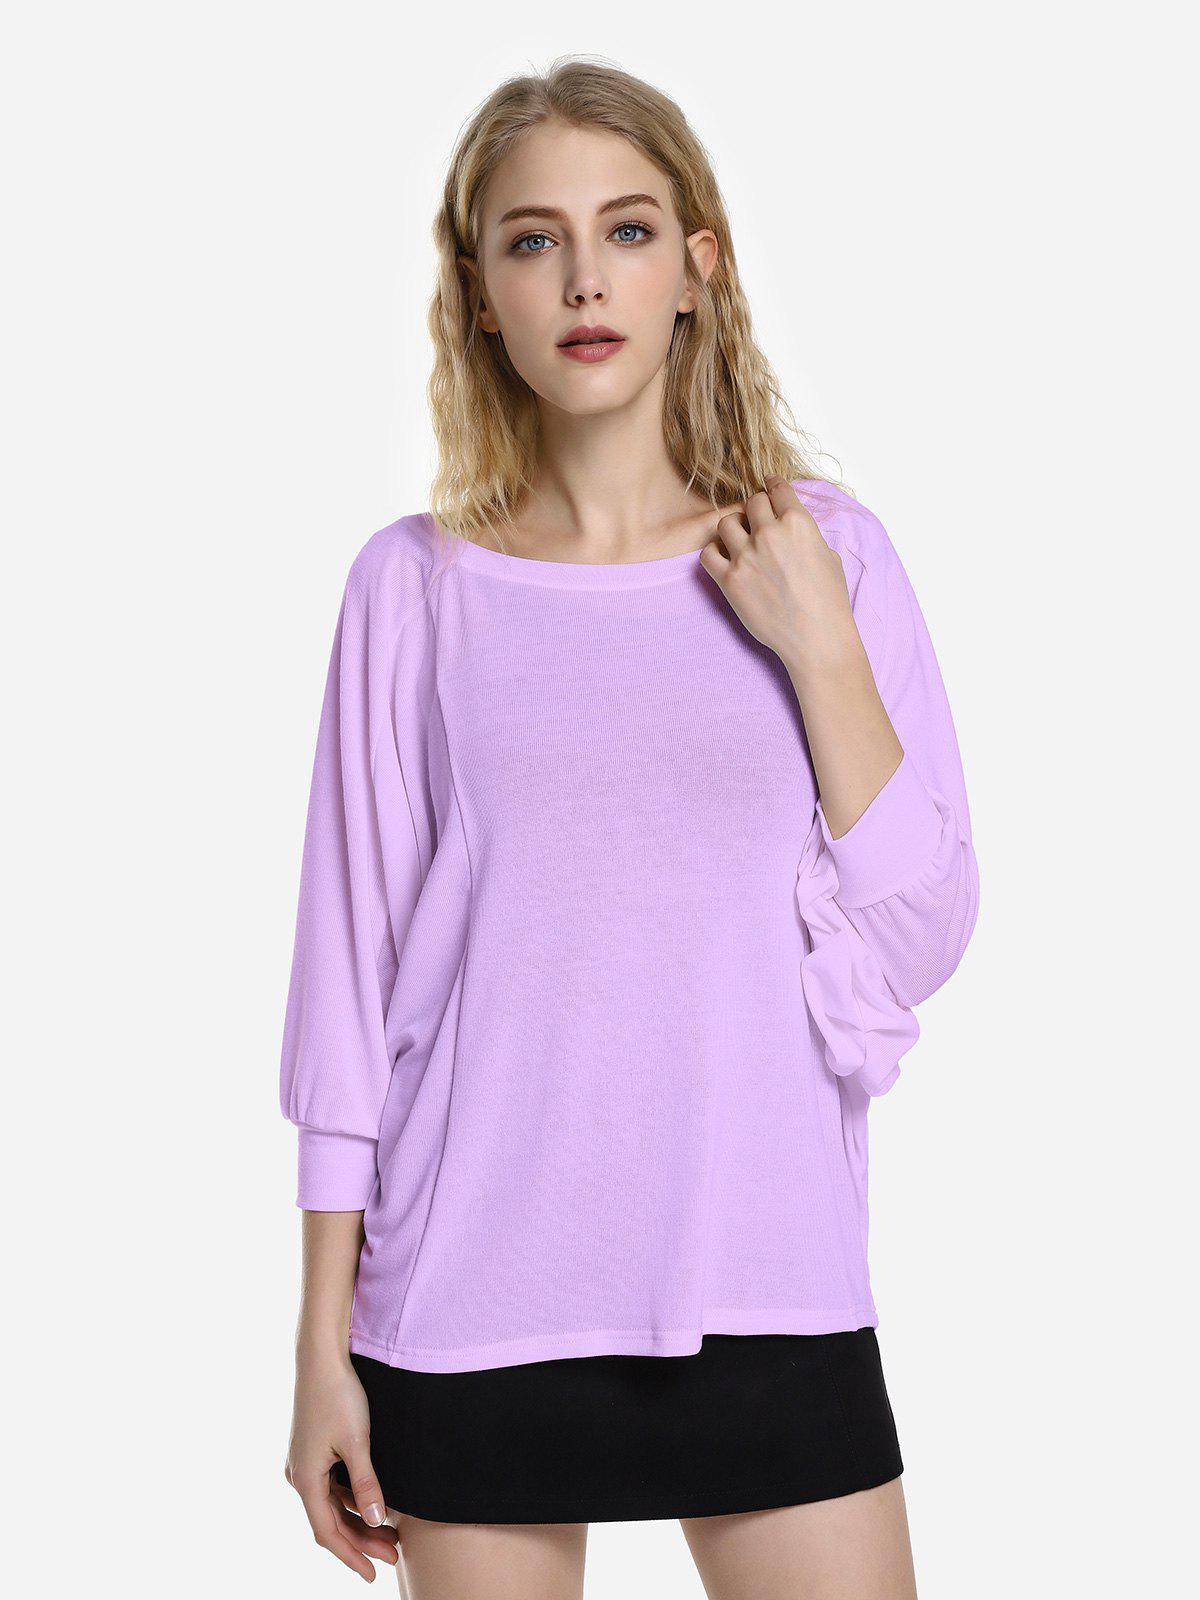 ZAN.STYLE Dolman Sleeve Top - PURPLE XL